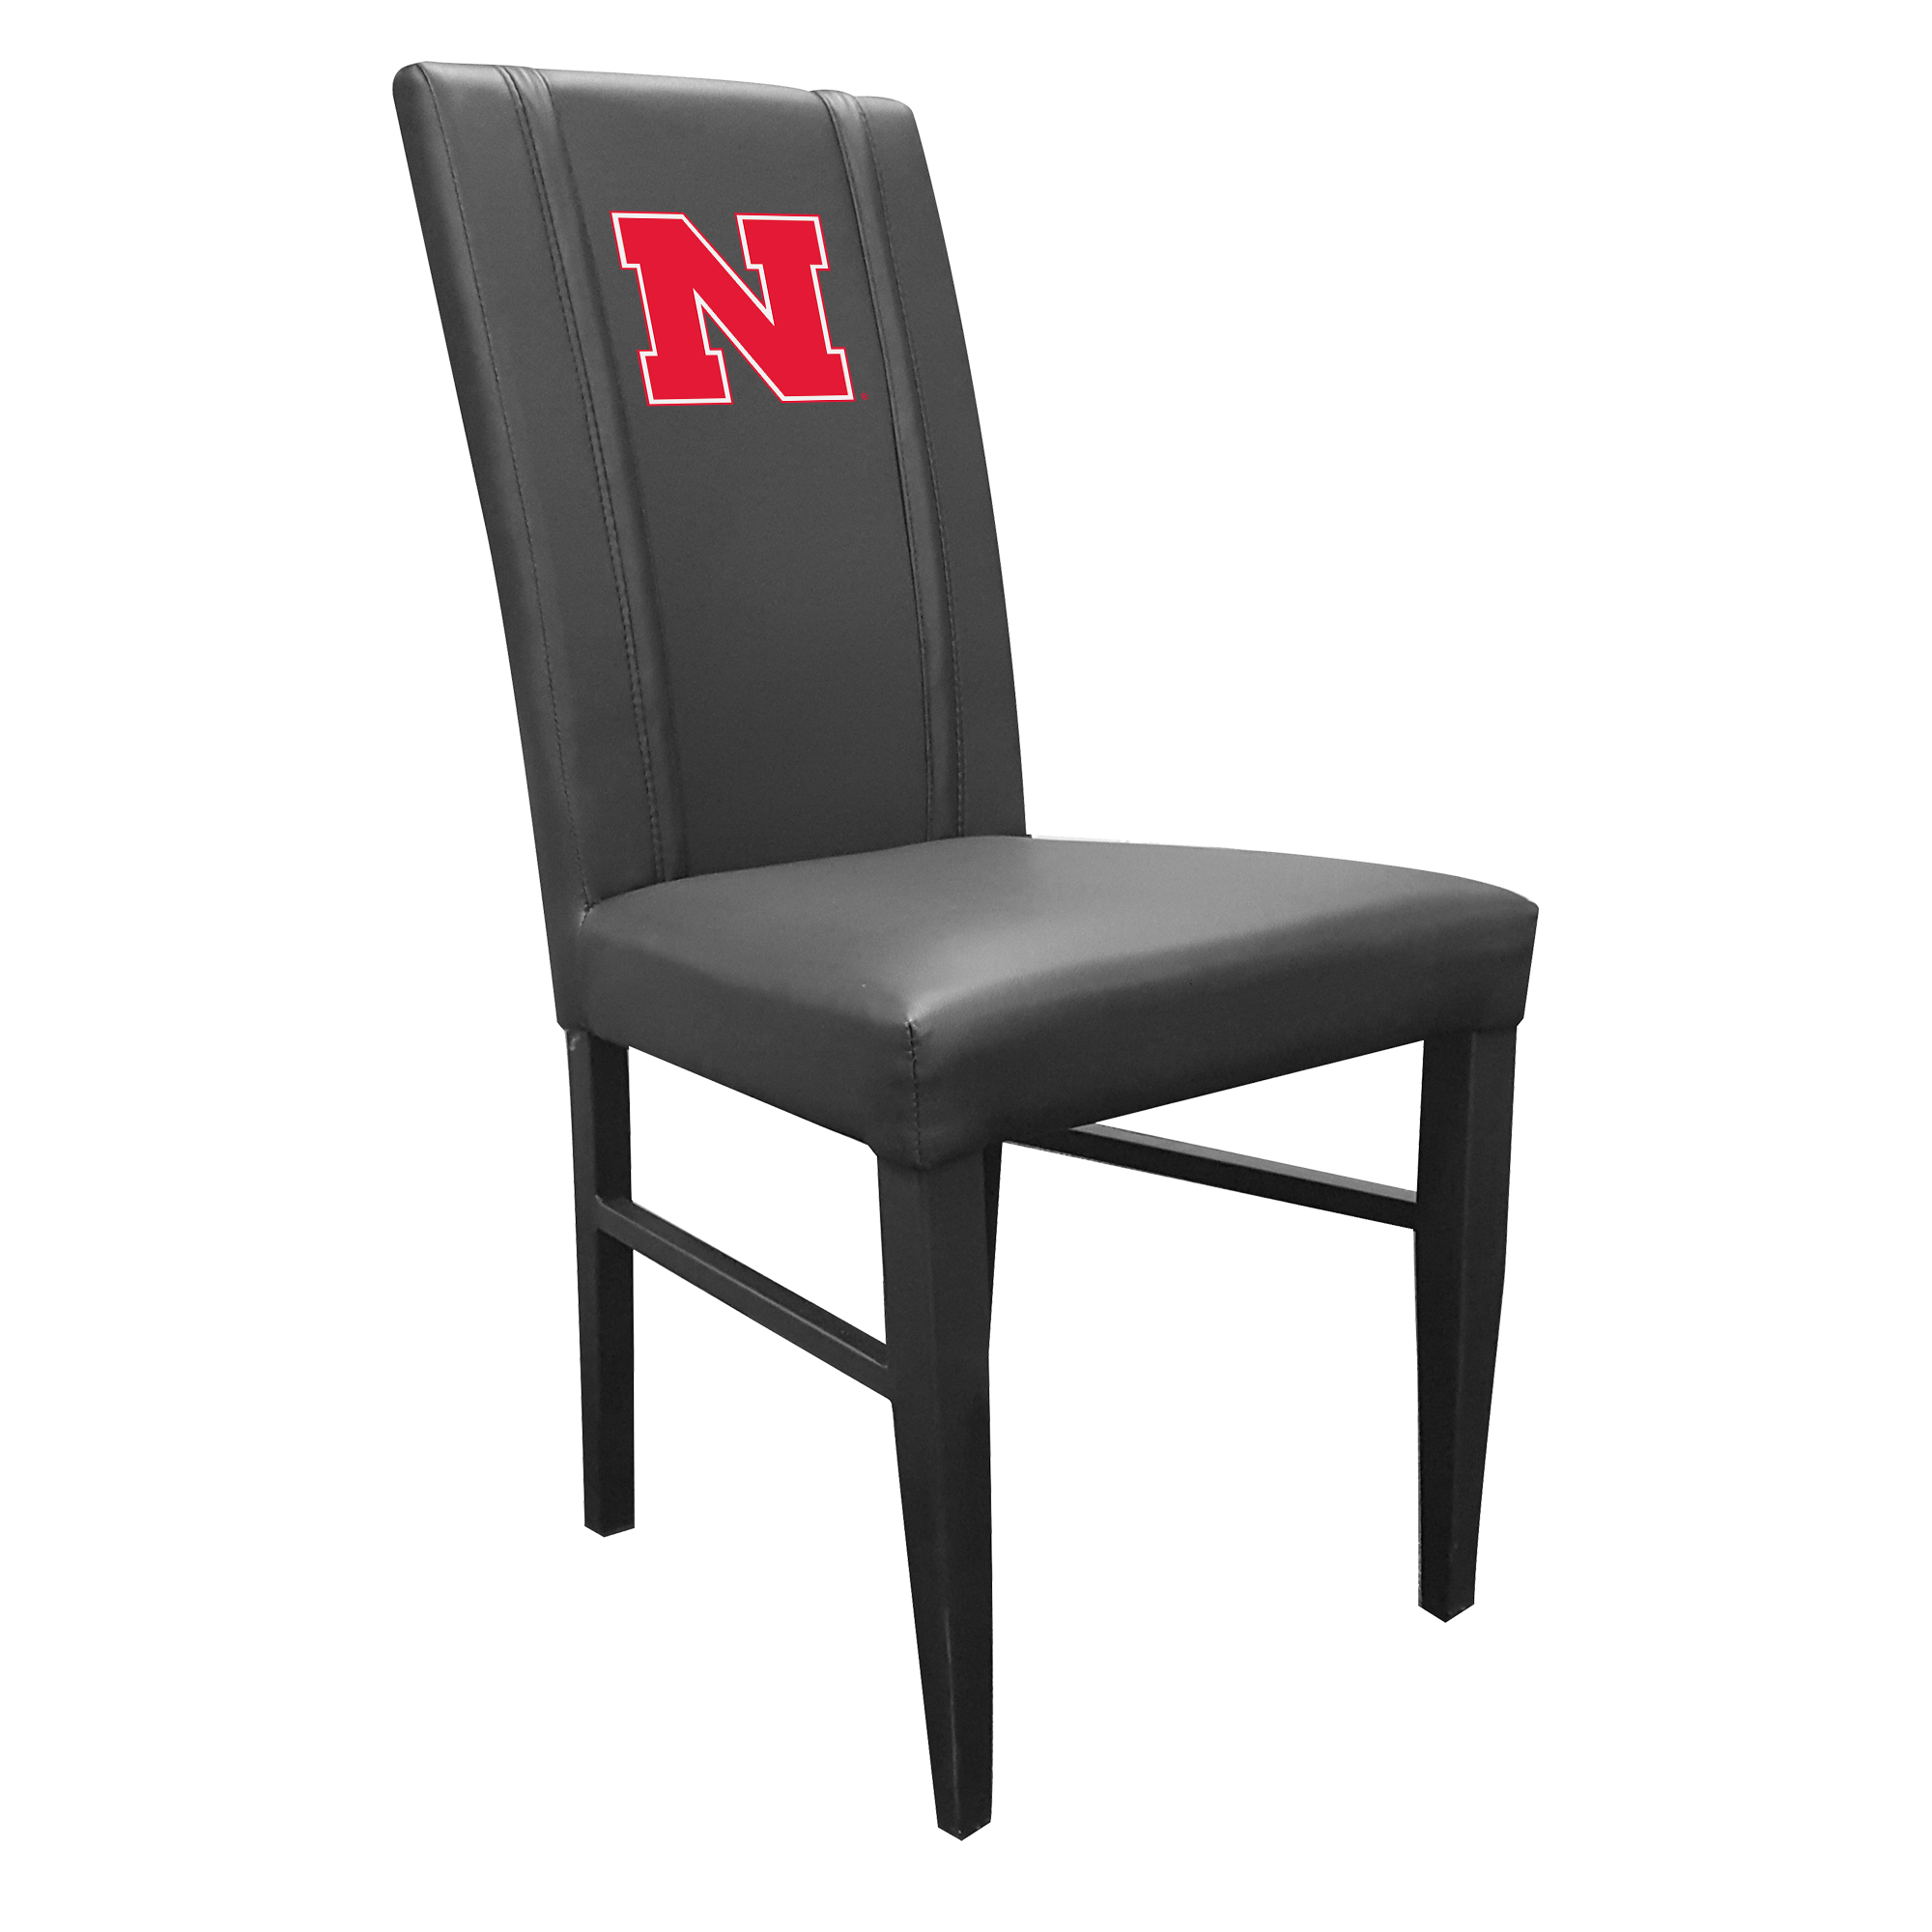 Side Chair 2000 with Nebraska Cornhuskers Primary